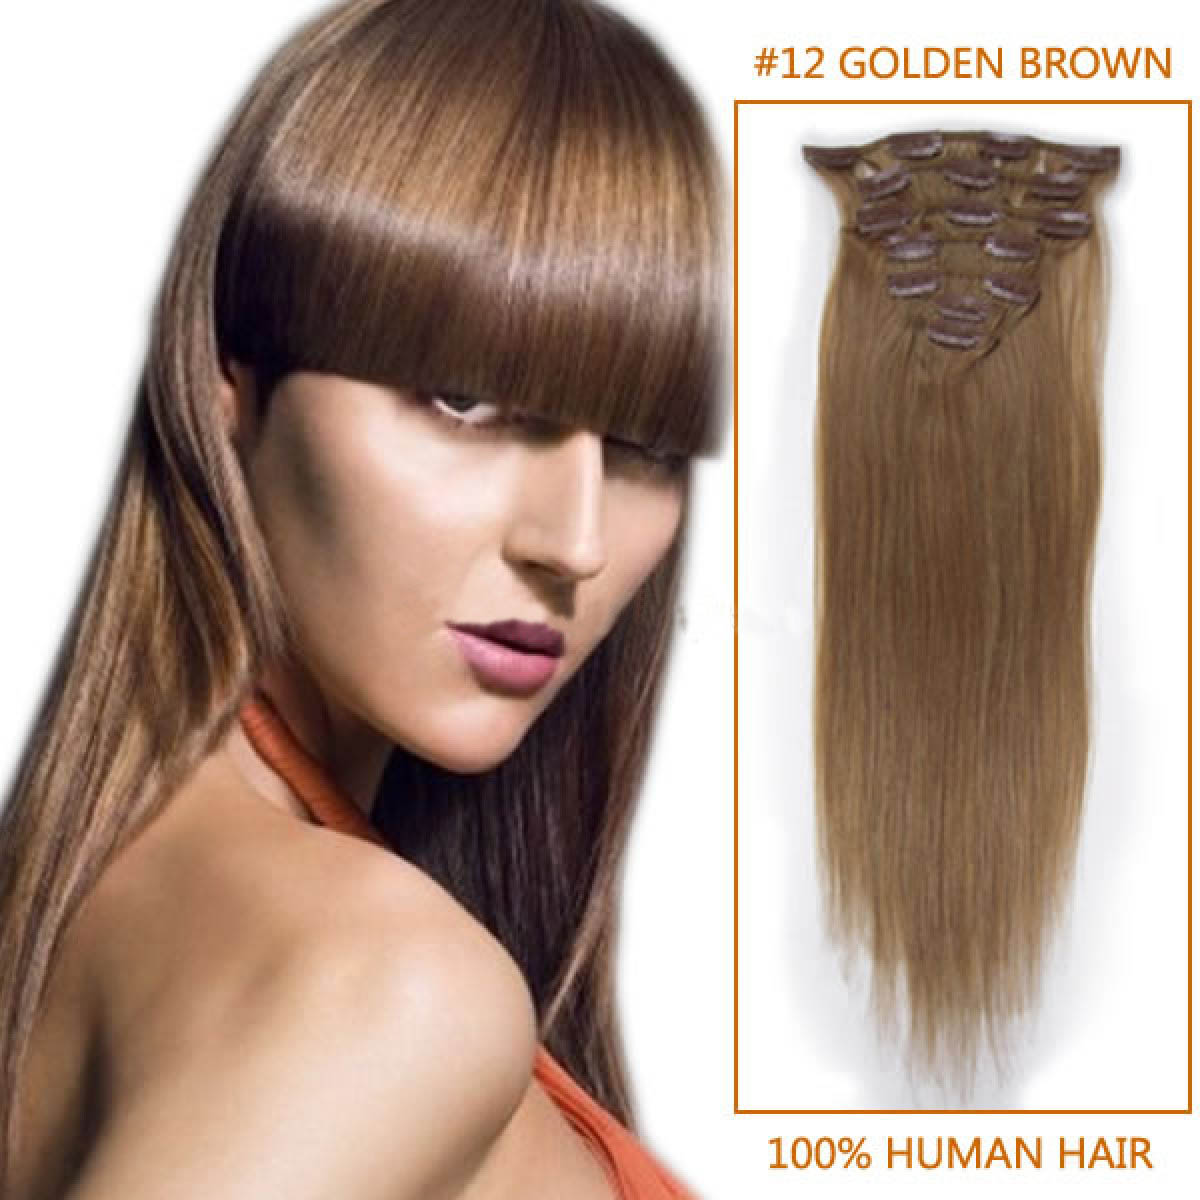 20 Inch 12 Golden Brown Clip In Remy Human Hair Extensions 7pcs